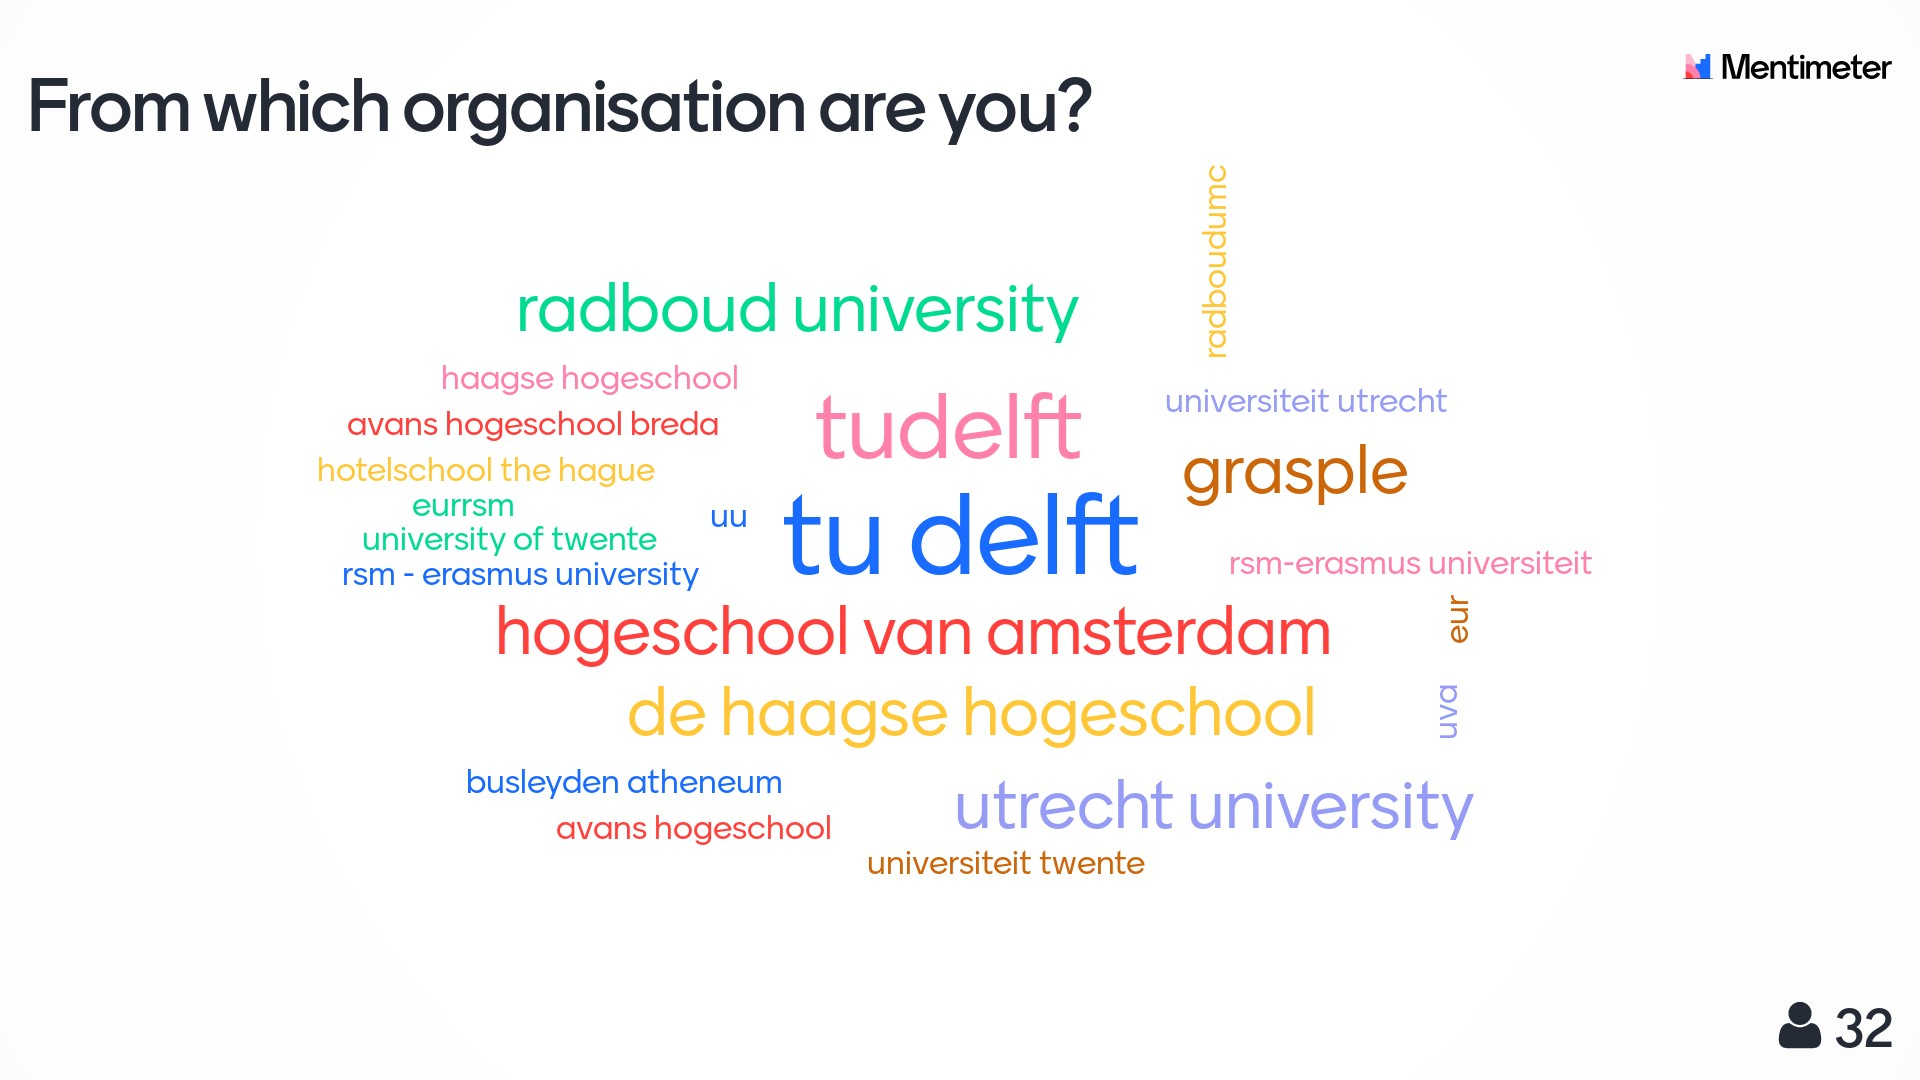 Grasple Teacher Day - From which organisation are you??